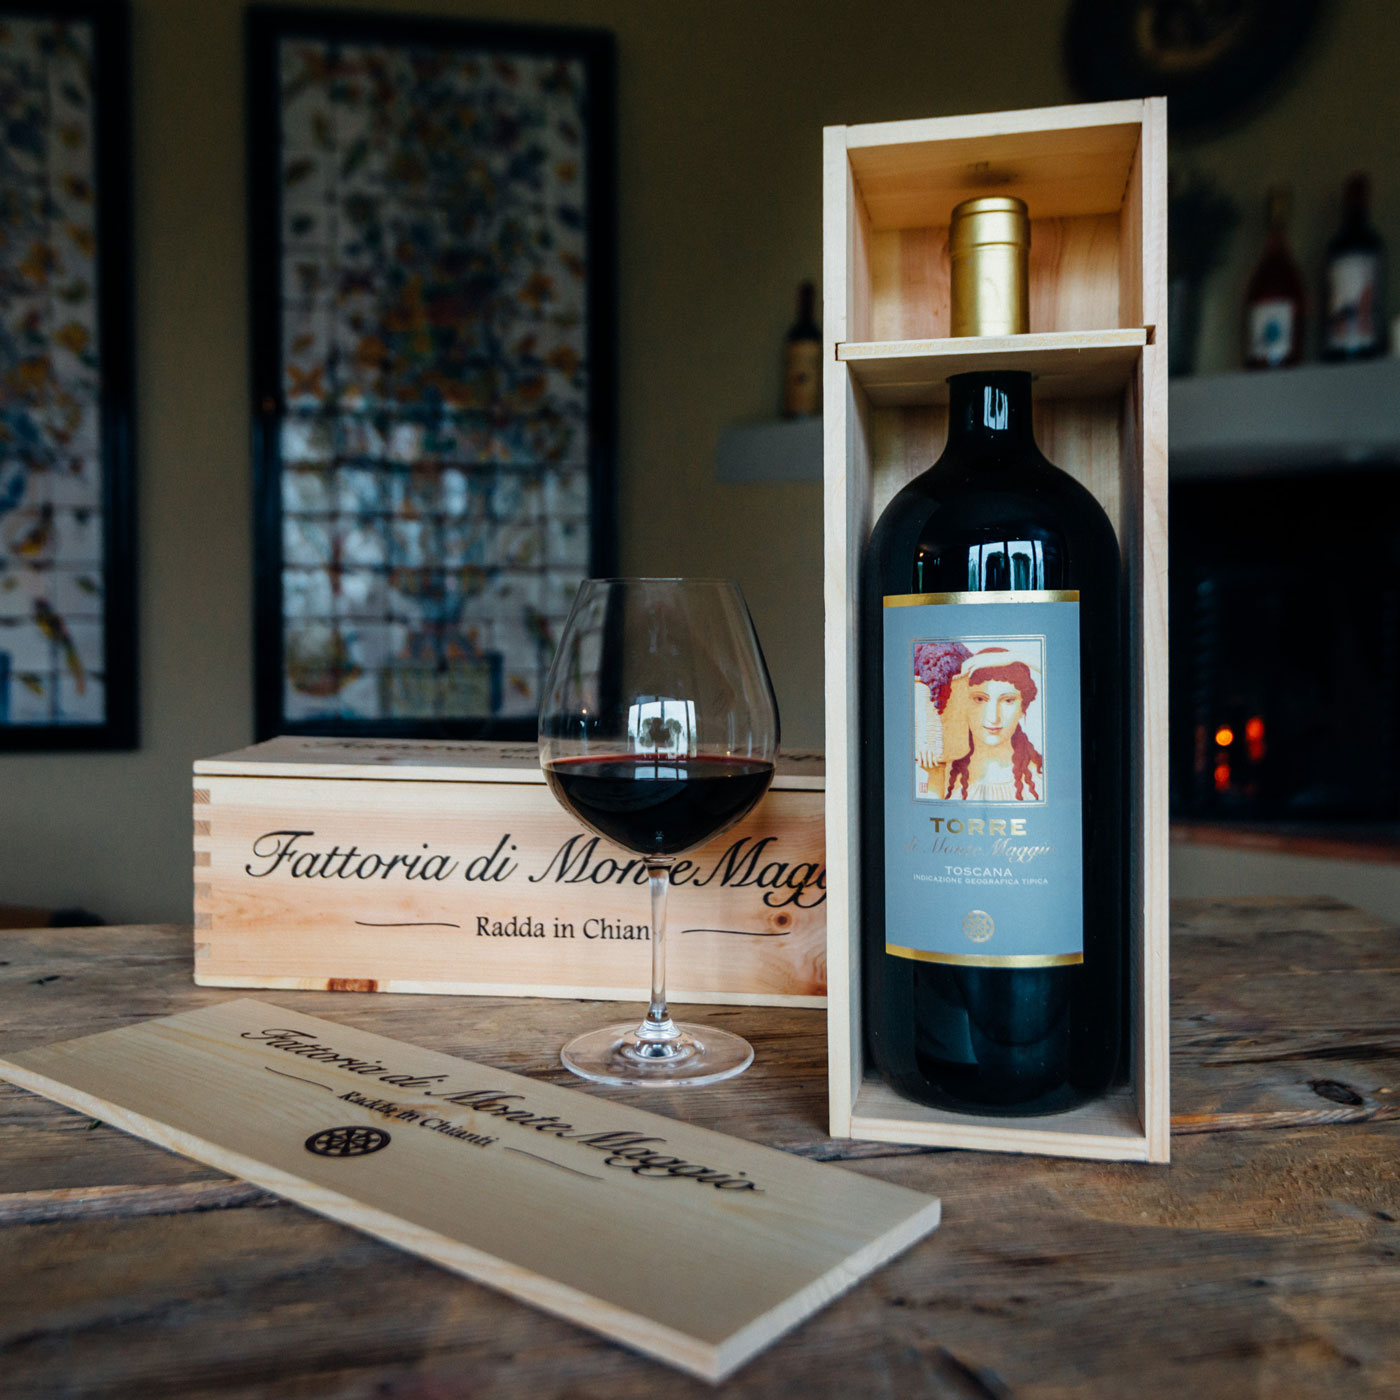 Torre di Montemaggio boxed and ready to deliver to your home from Italy